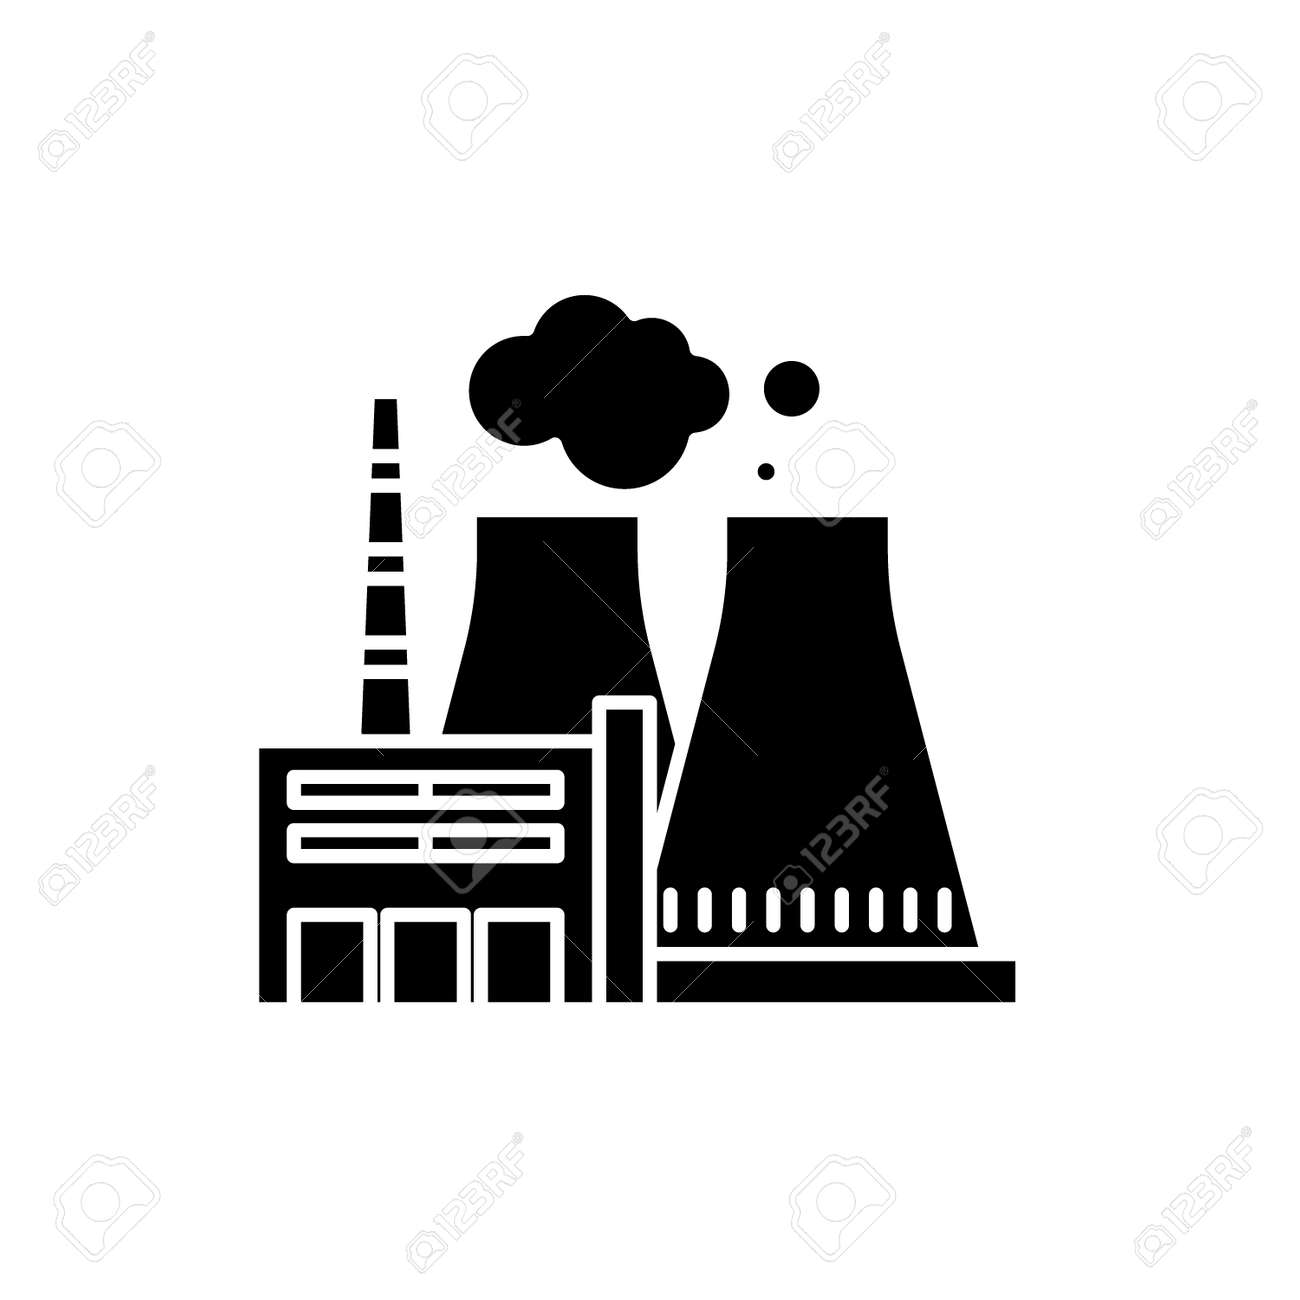 Thermal Power Plant Black Icon Concept Vector Sign On Isolated Royalty Free Cliparts Vectors And Stock Illustration Image 127266599